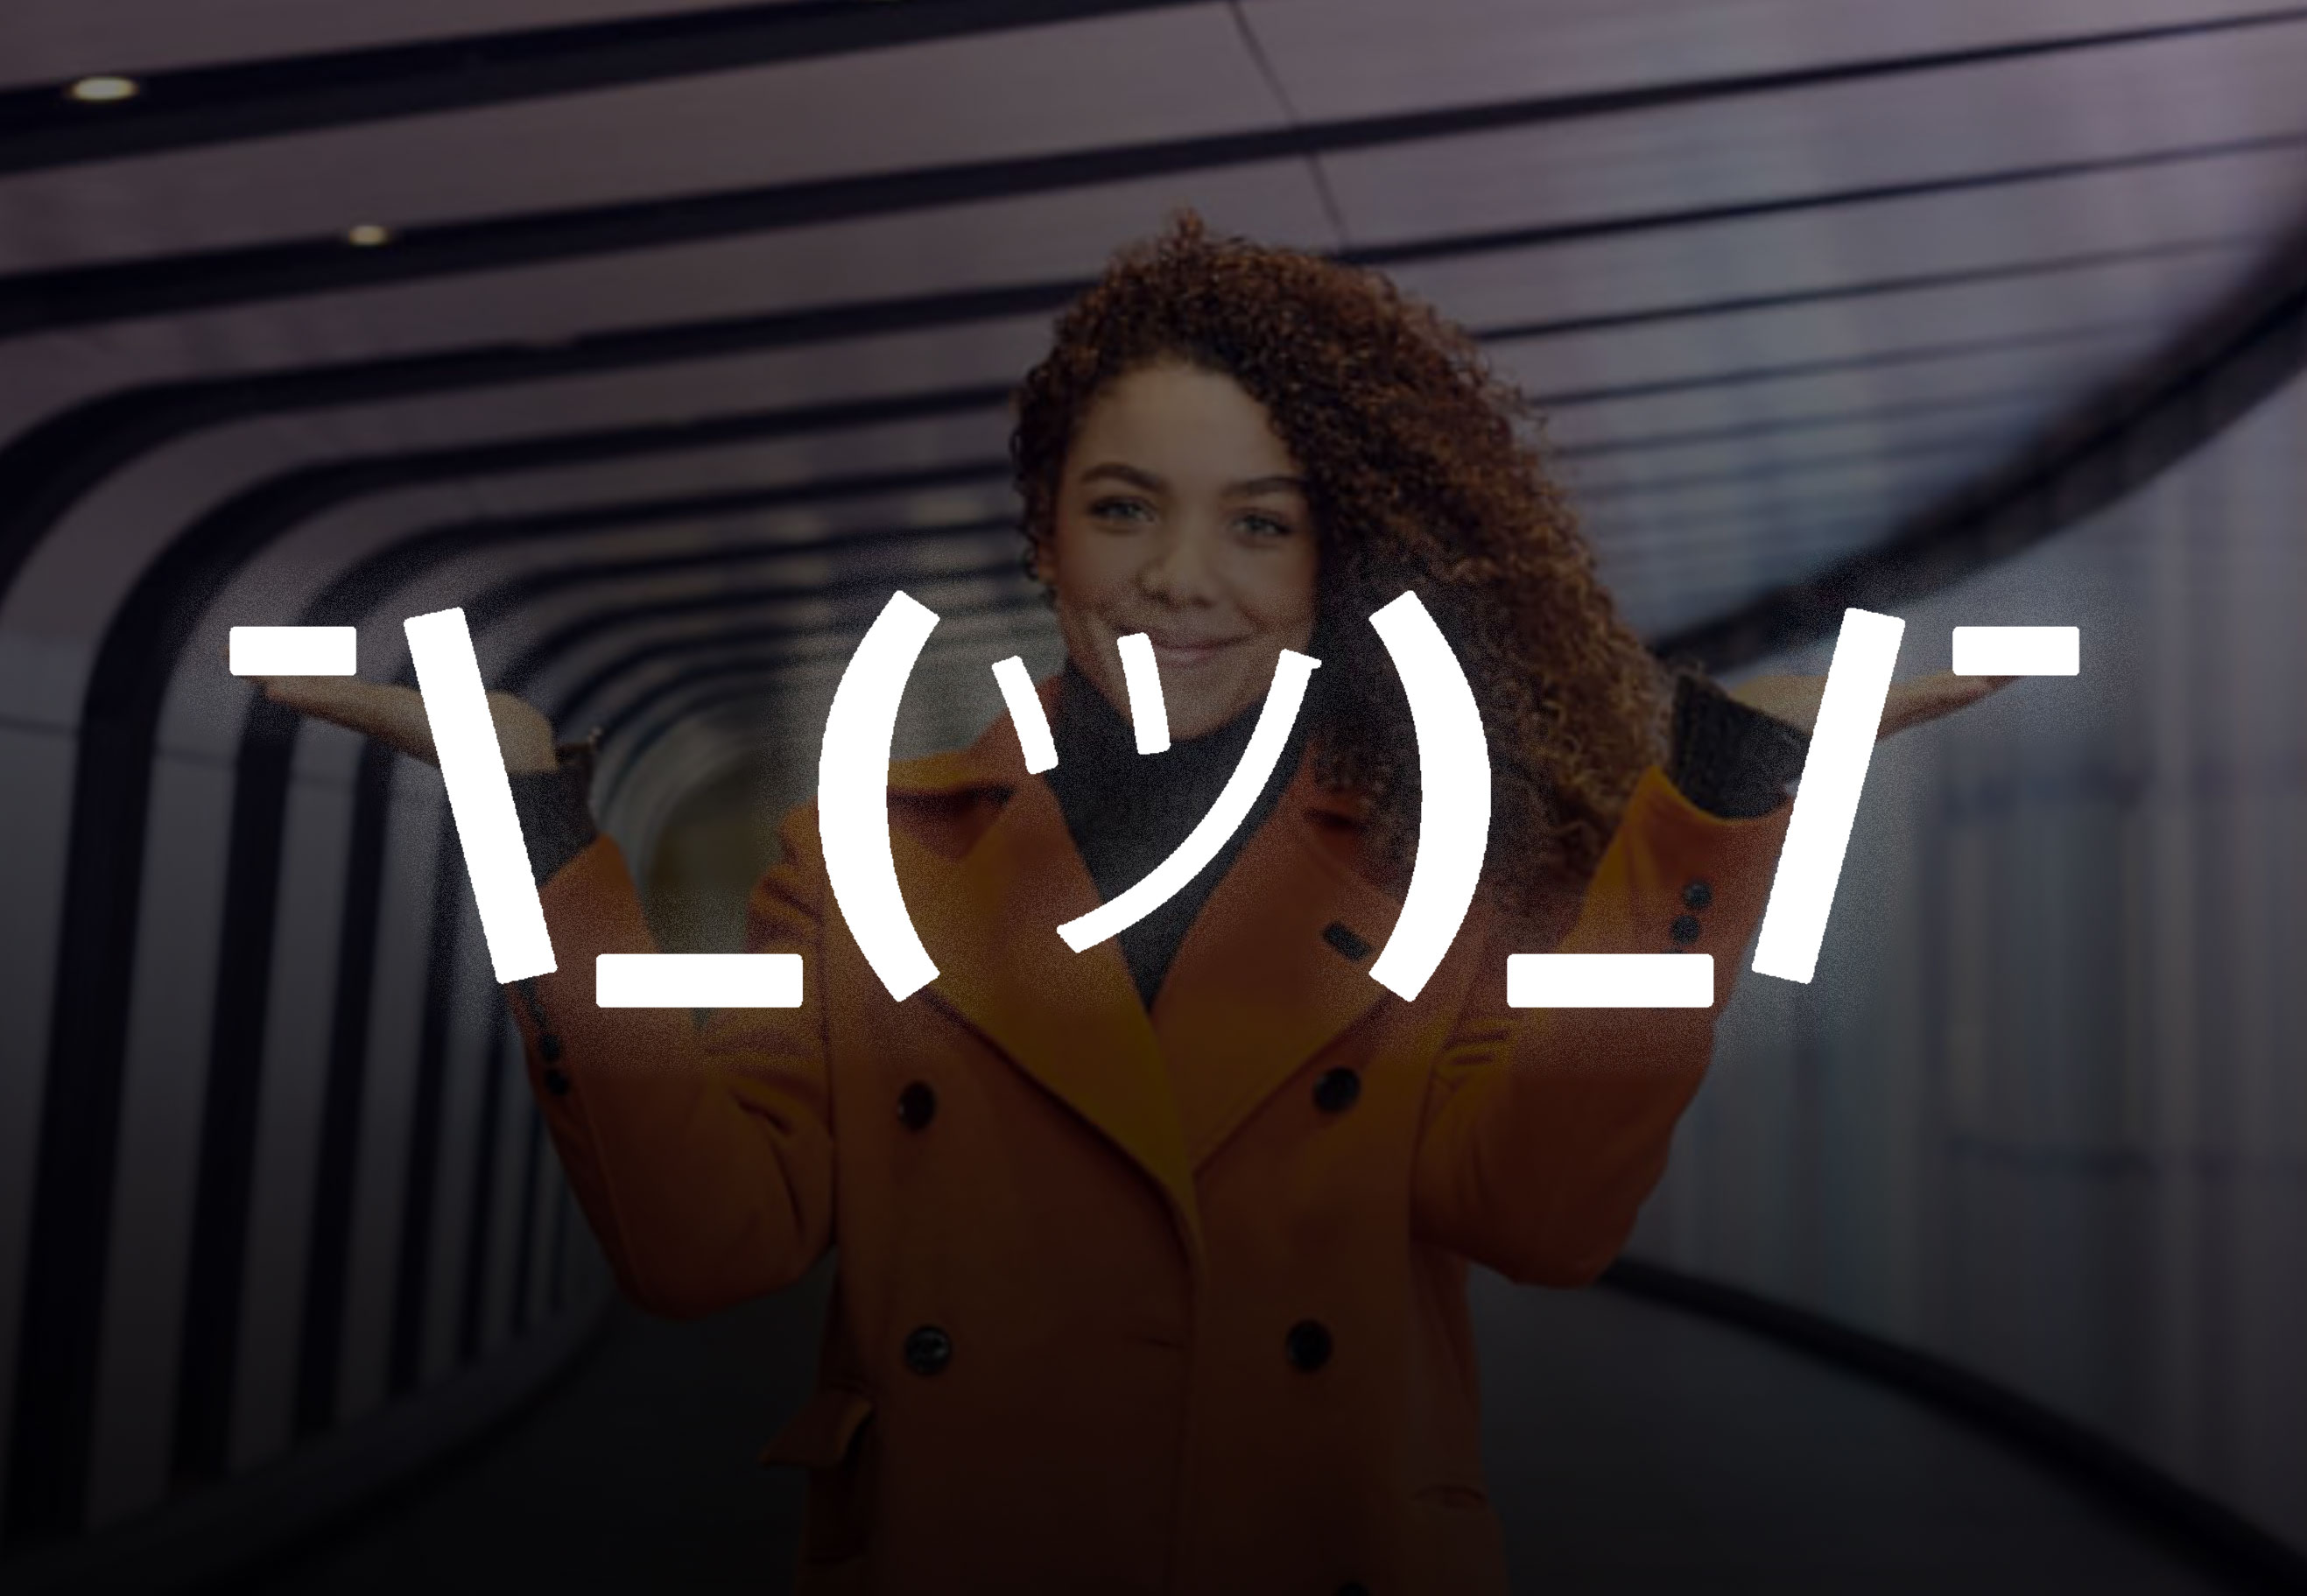 Overlaid 'shruggie' emoticon on the 2019 International Women's Day campaign image, which depicts a woman holding her palms up to form a 'w' shape with her body